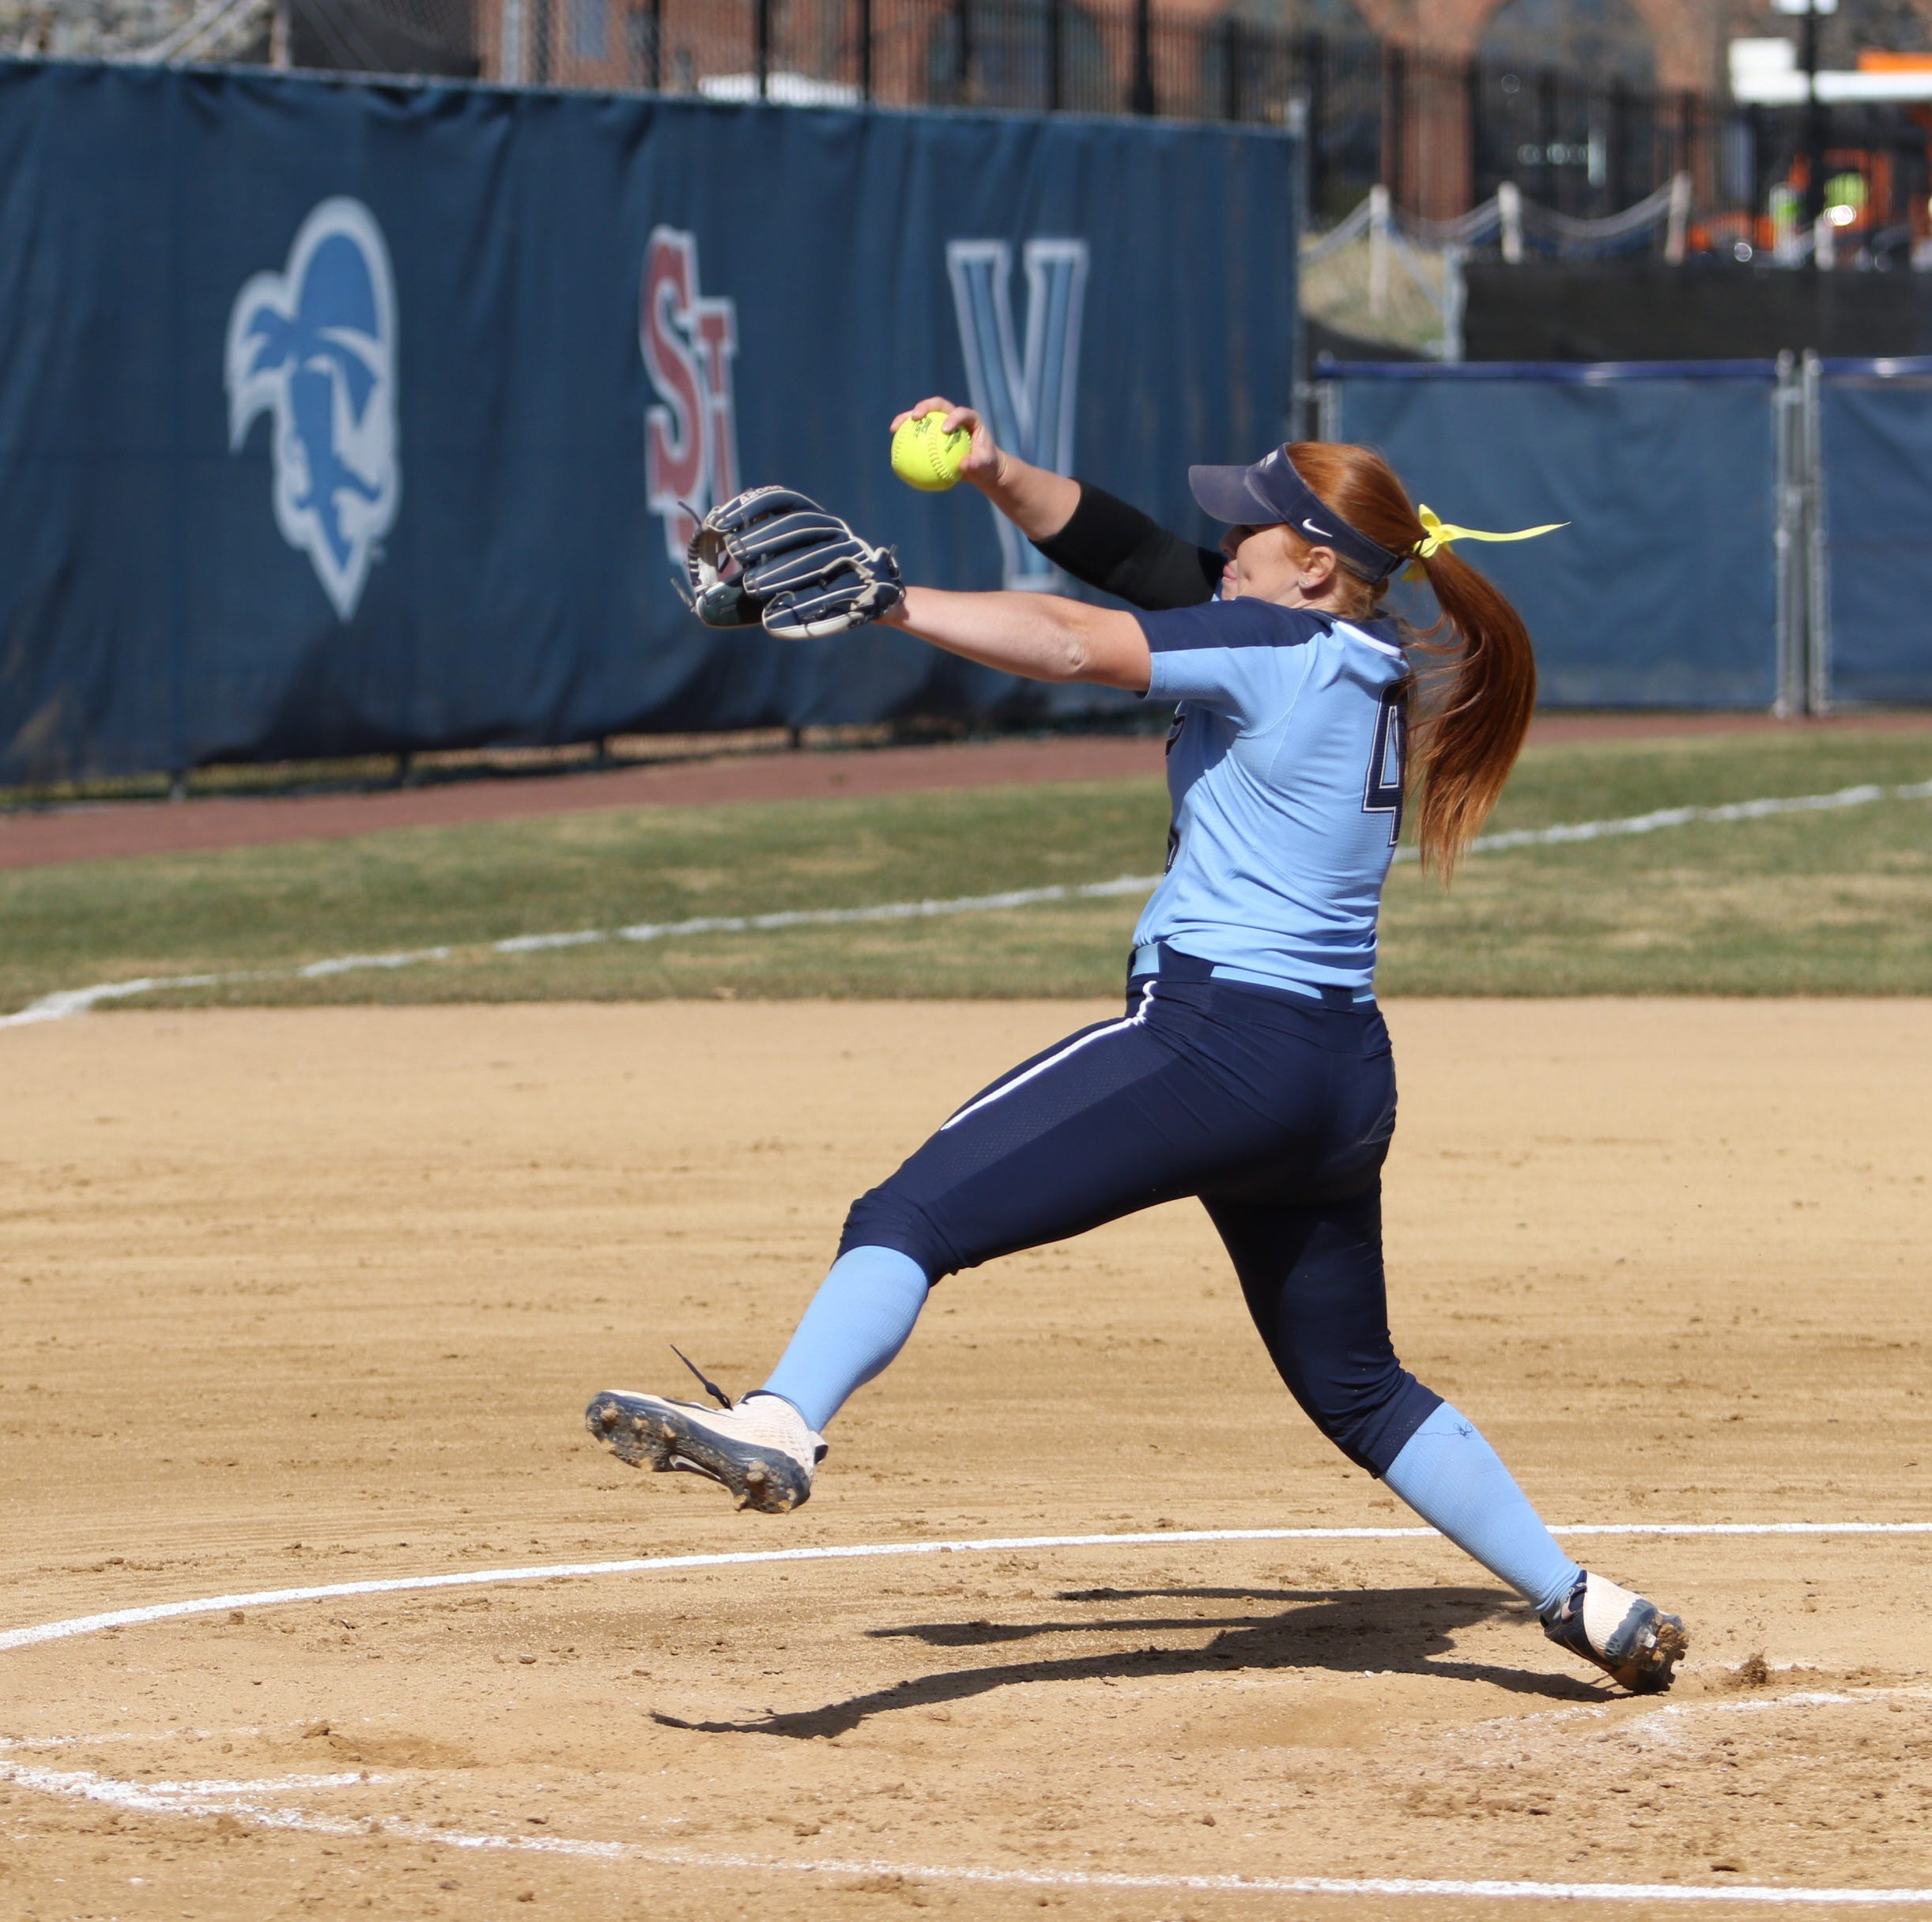 Binghamton grads Orchard, Rauch have Villanova softball moving in right direction